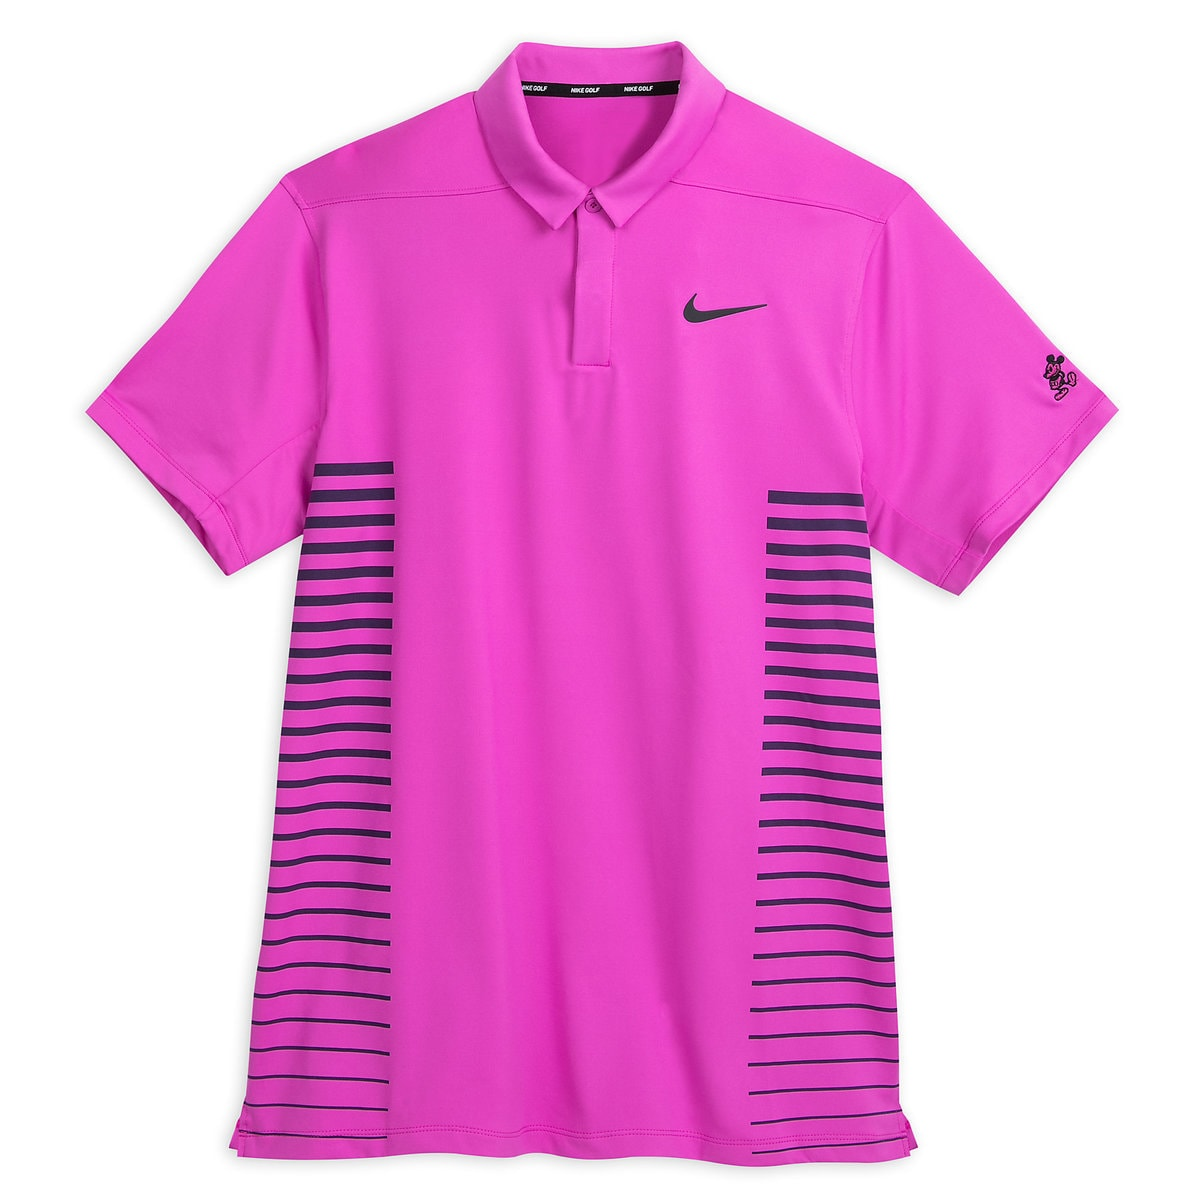 87f6f21fd Product Image of Mickey Mouse Performance Polo Shirt for Men by Nike Golf -  Magenta Stripe